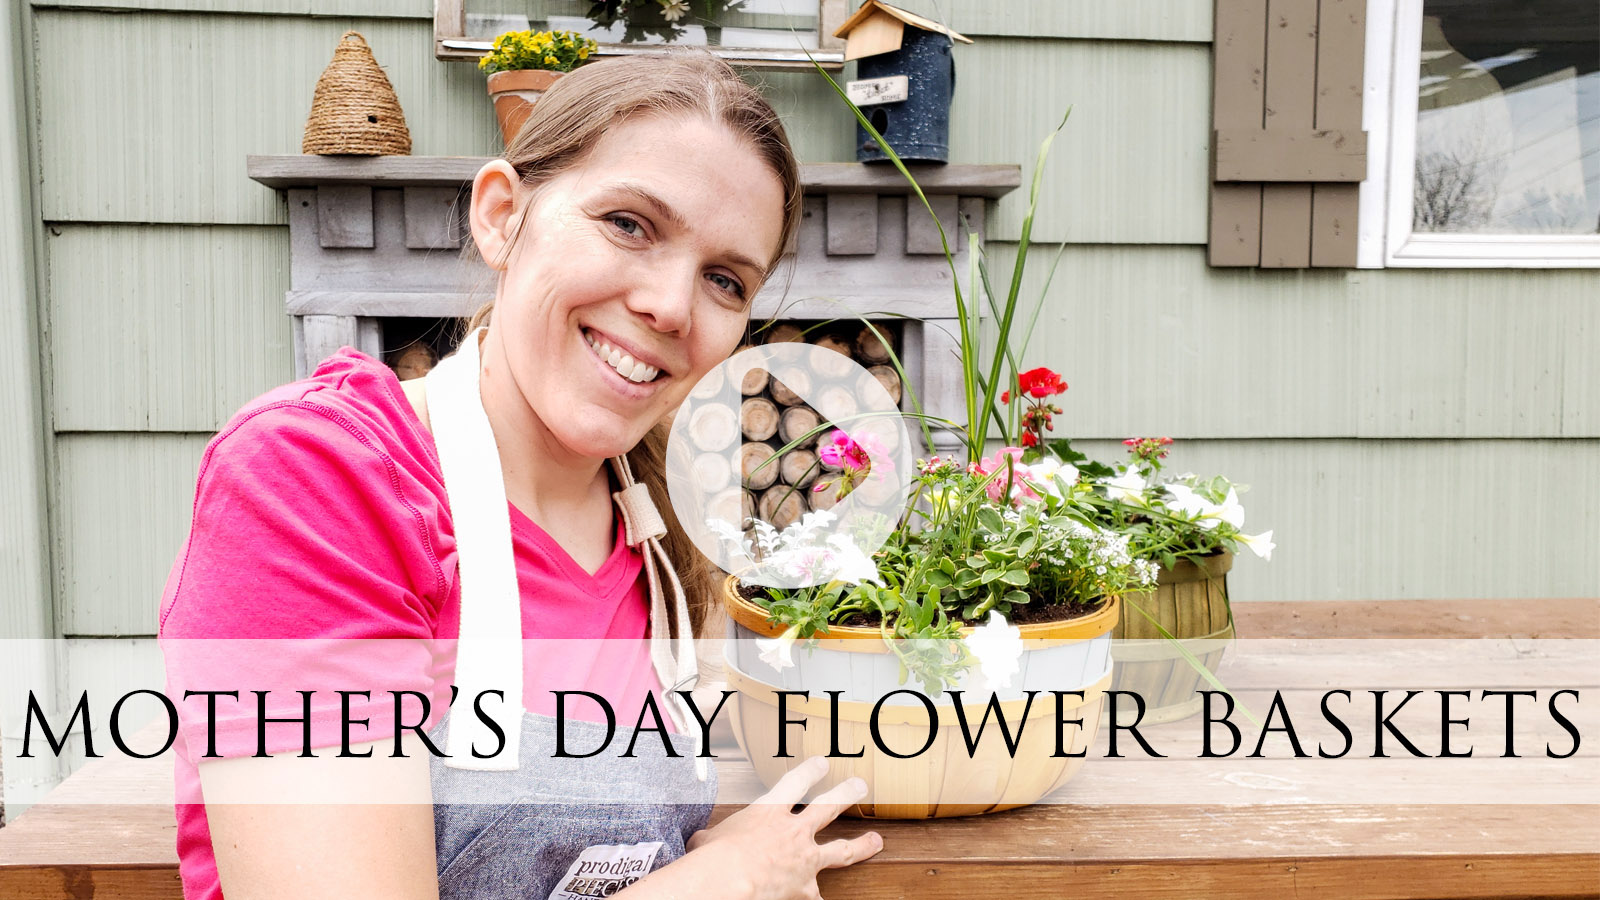 DIY Mother's Day Flower Basket Video Tutorial by Larissa of Prodigal Pieces | prodigalpieces.com